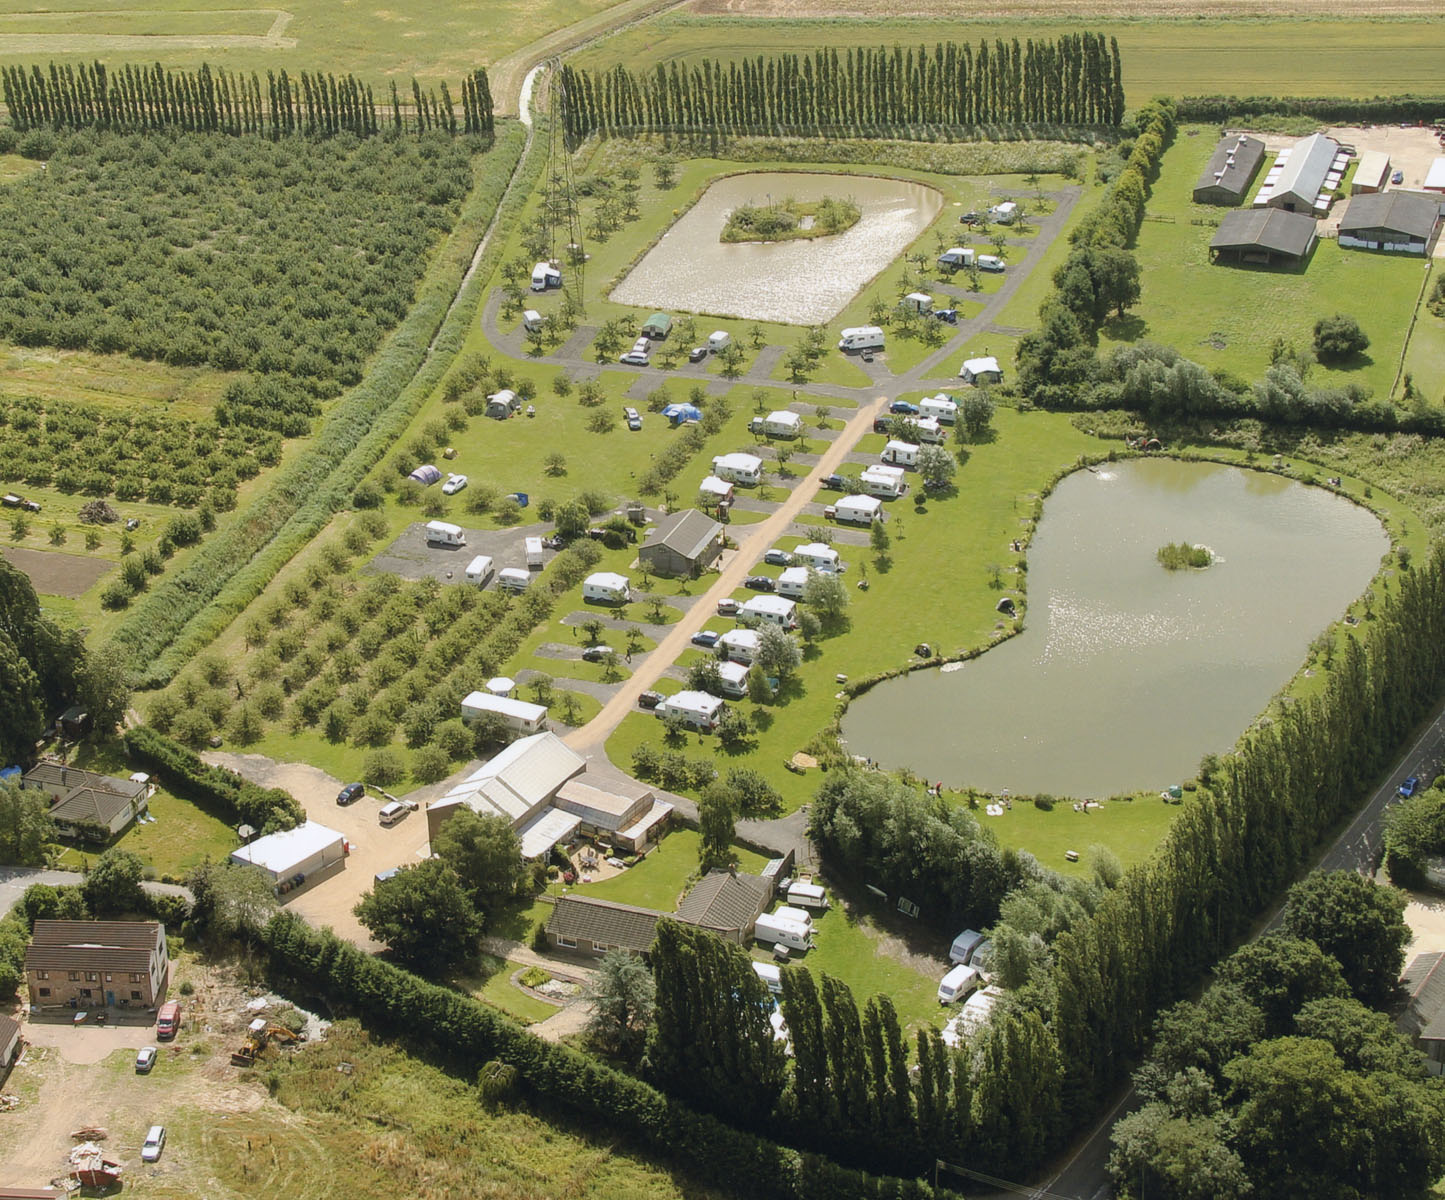 Aerial photograph of little ranch leisure including the fishing lakes and caravan park